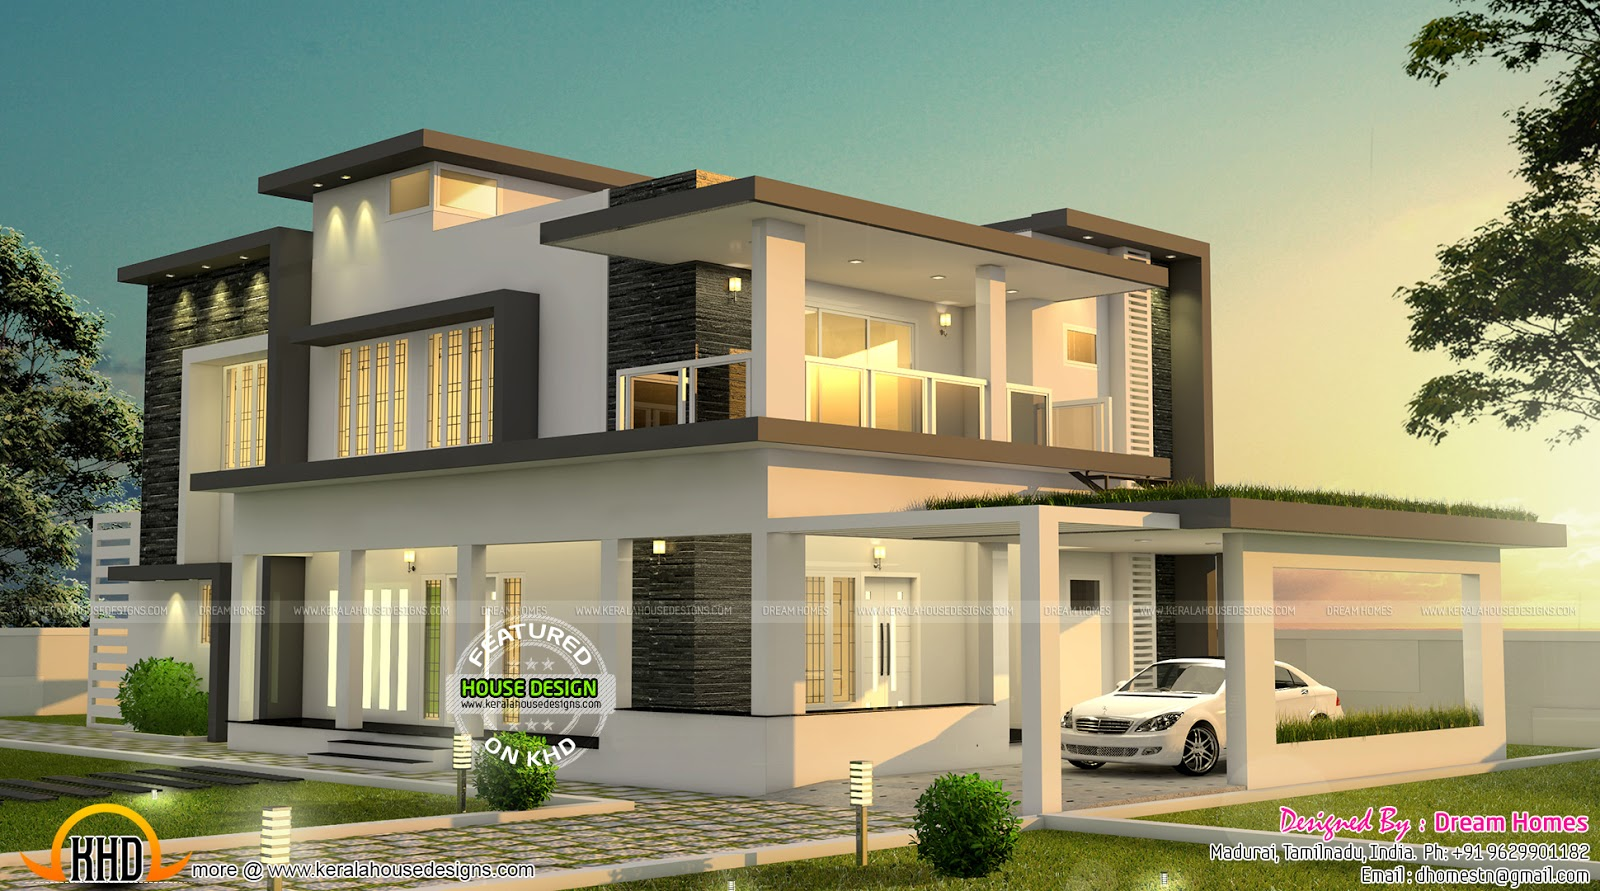 Beautiful modern house in tamilnadu kerala home design and floor plans - Modern house designs ...